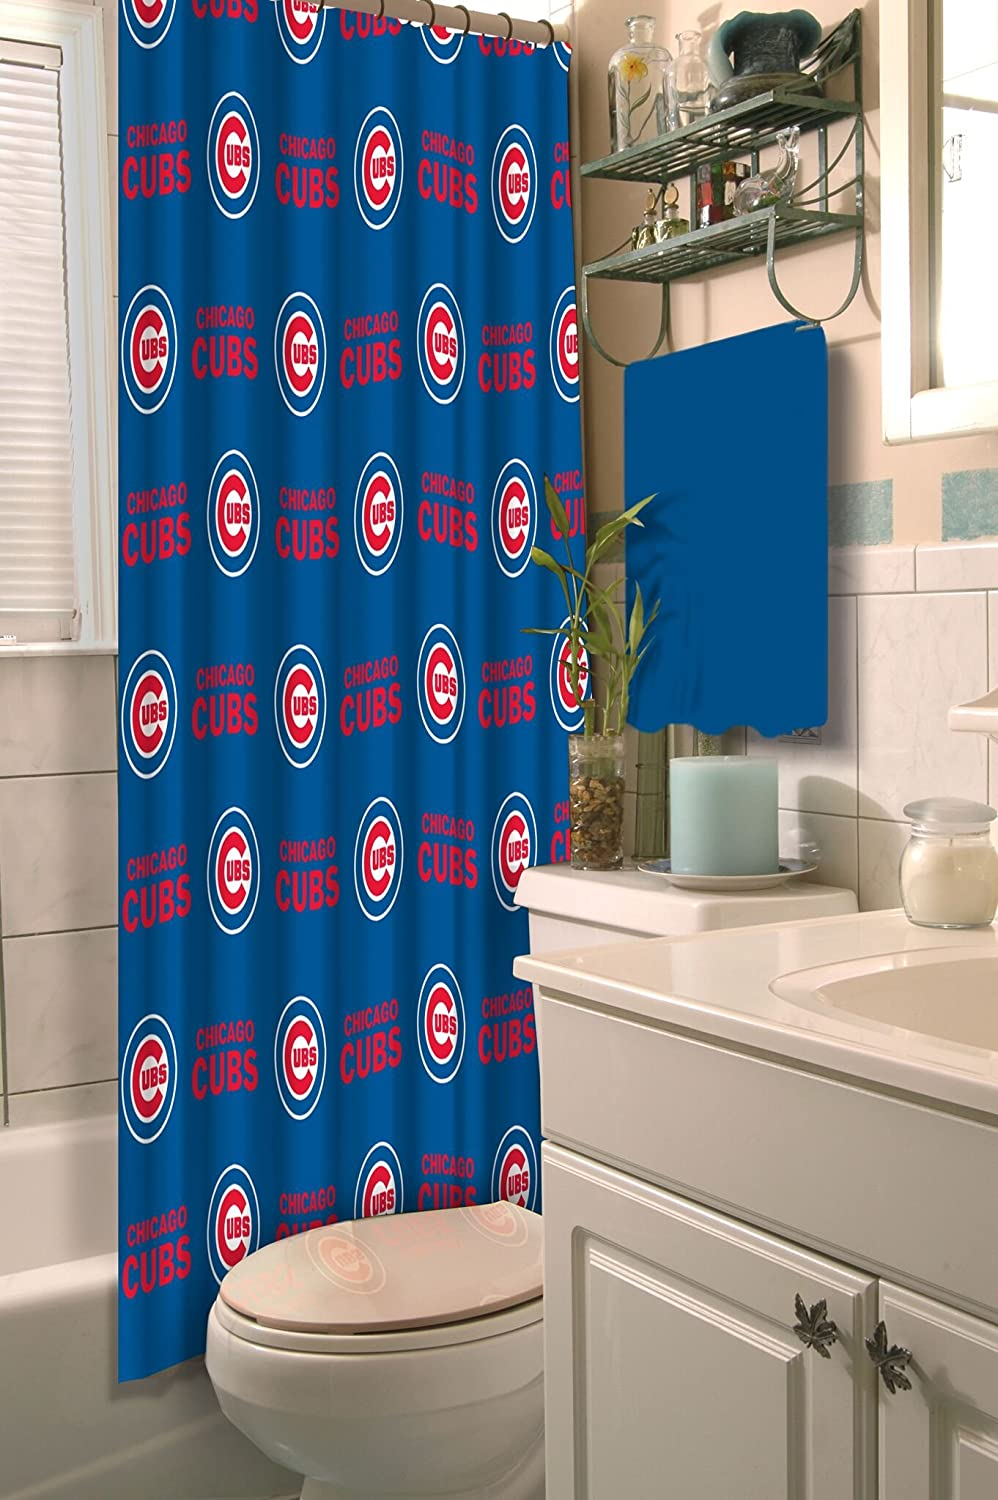 Amazon.com: Shower Curtains - Bath: Sports & Outdoors